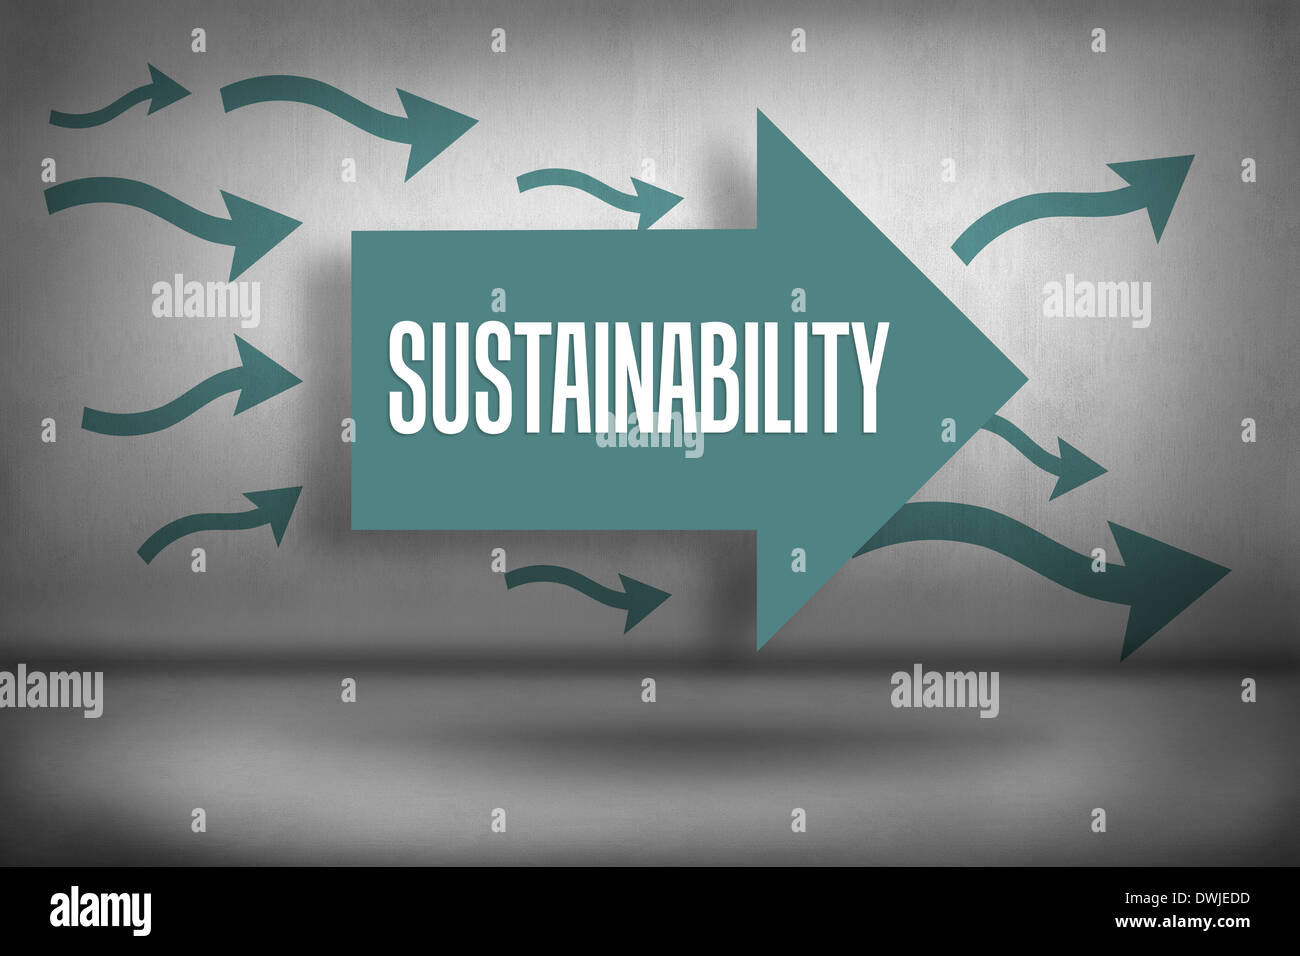 Sustainability against arrows pointing - Stock Image